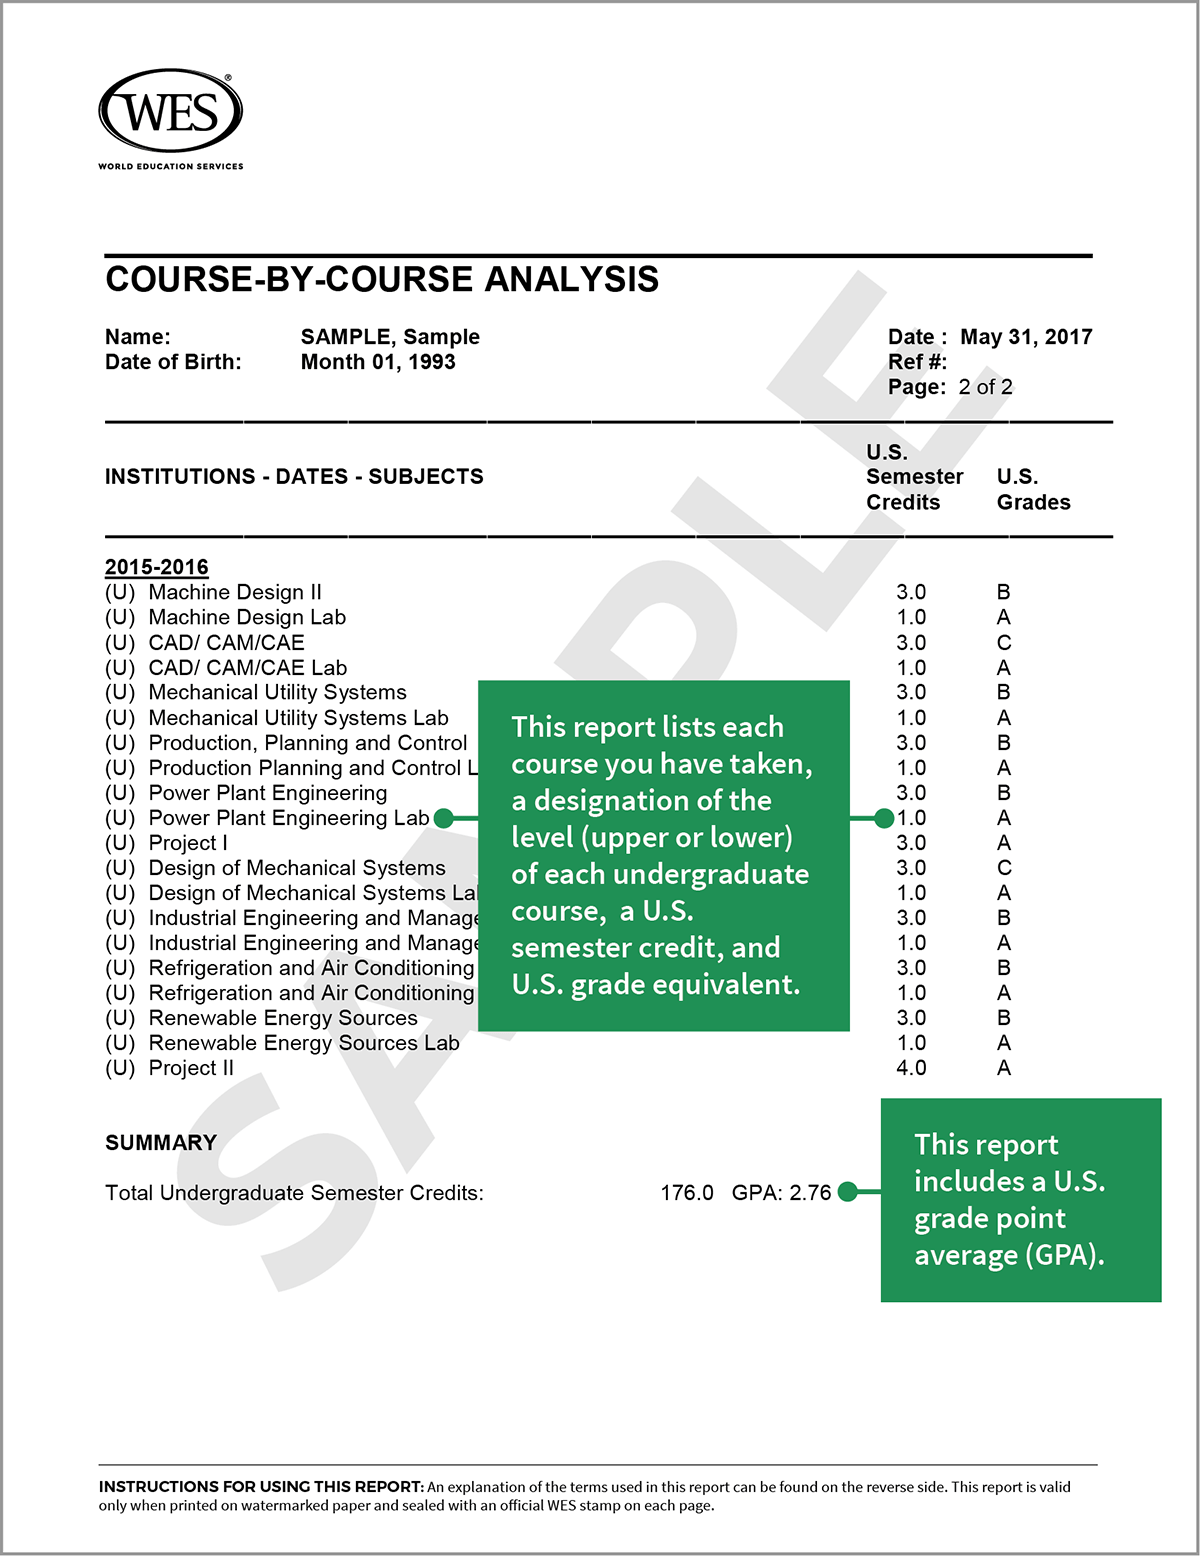 Course-By-Course Report